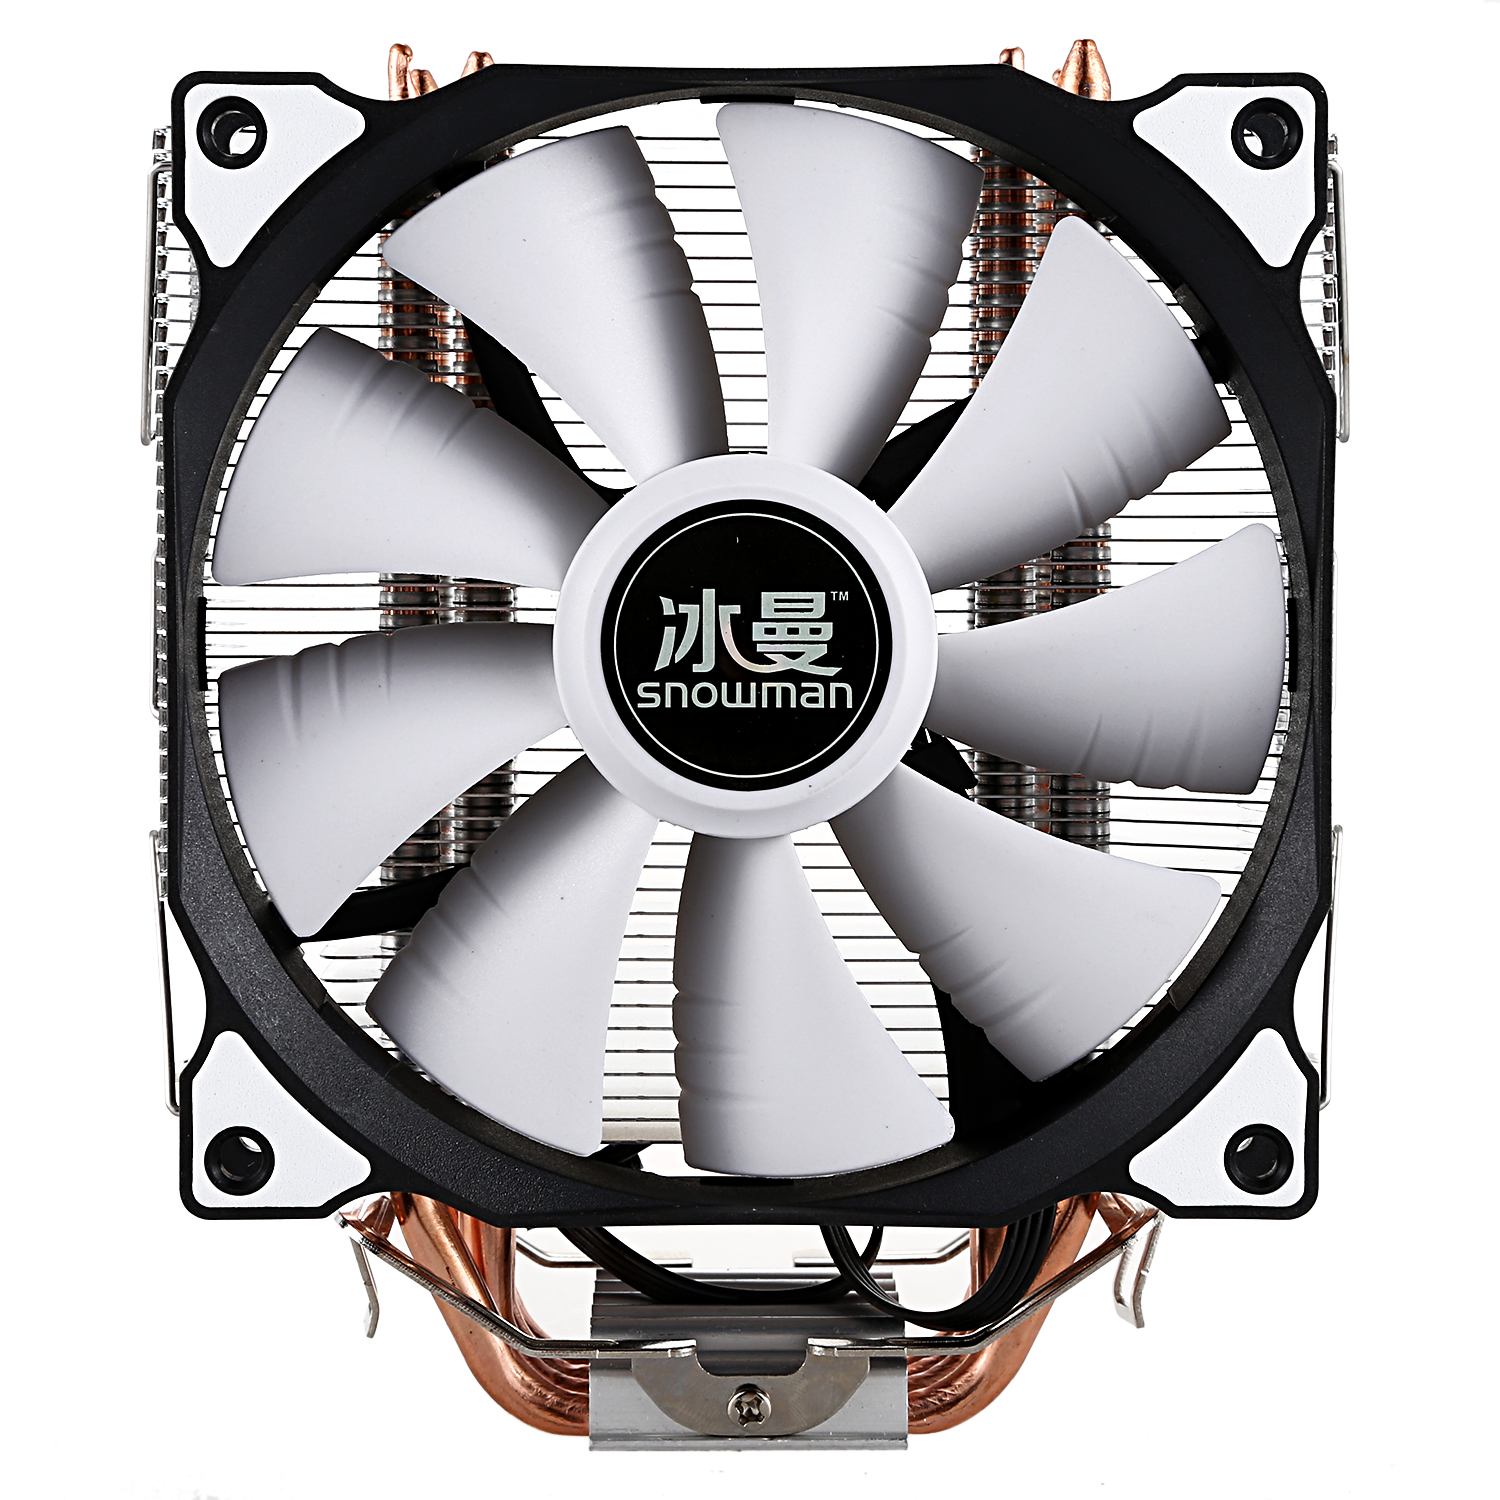 SNOWMAN CPU Cpu-Cooling-Fan Cooler-Master Freeze-Tower 5-Direct-Contact-Heatpipes Pwm-Fans